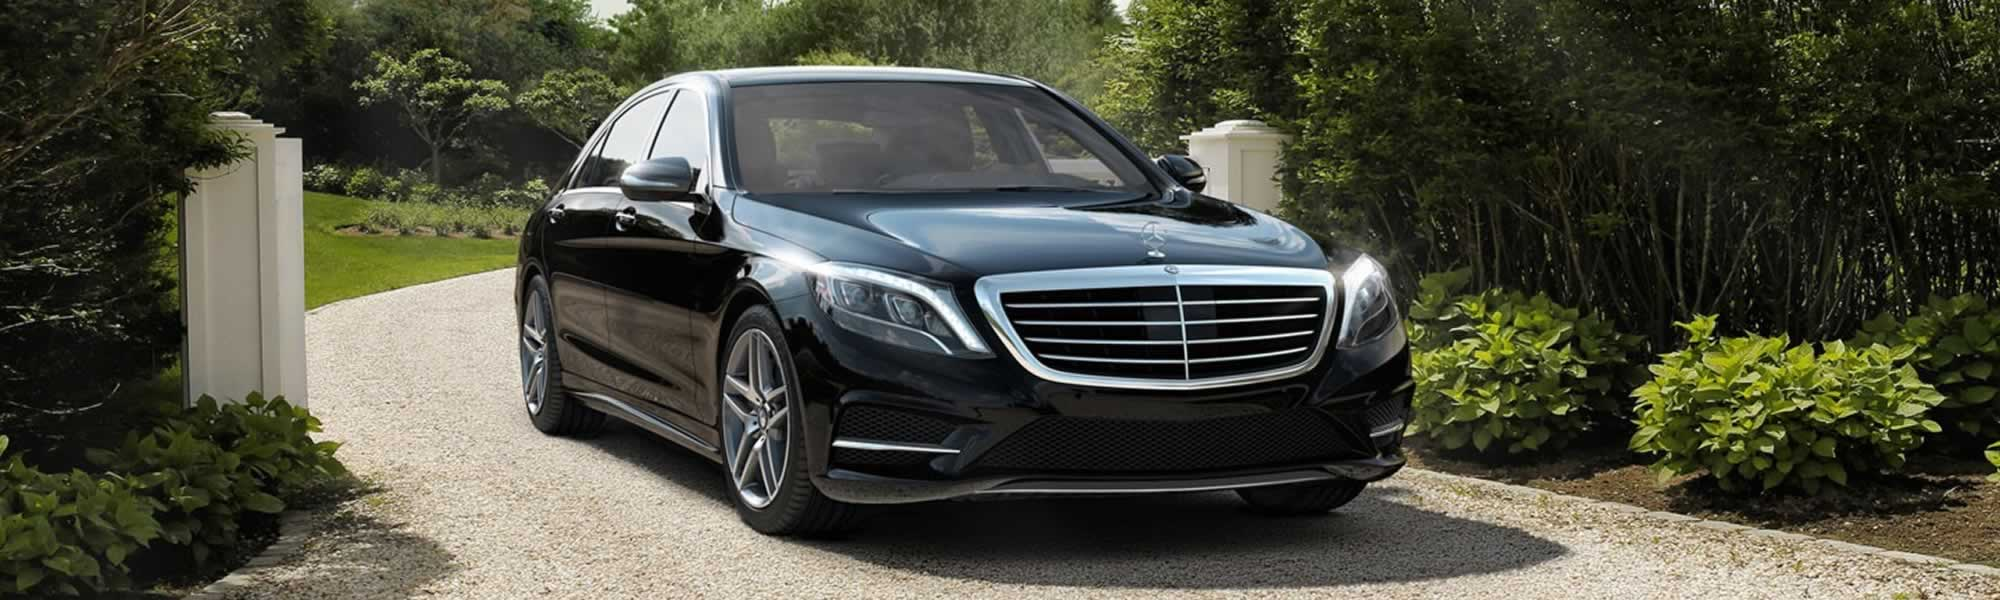 business car hire and limo hire service